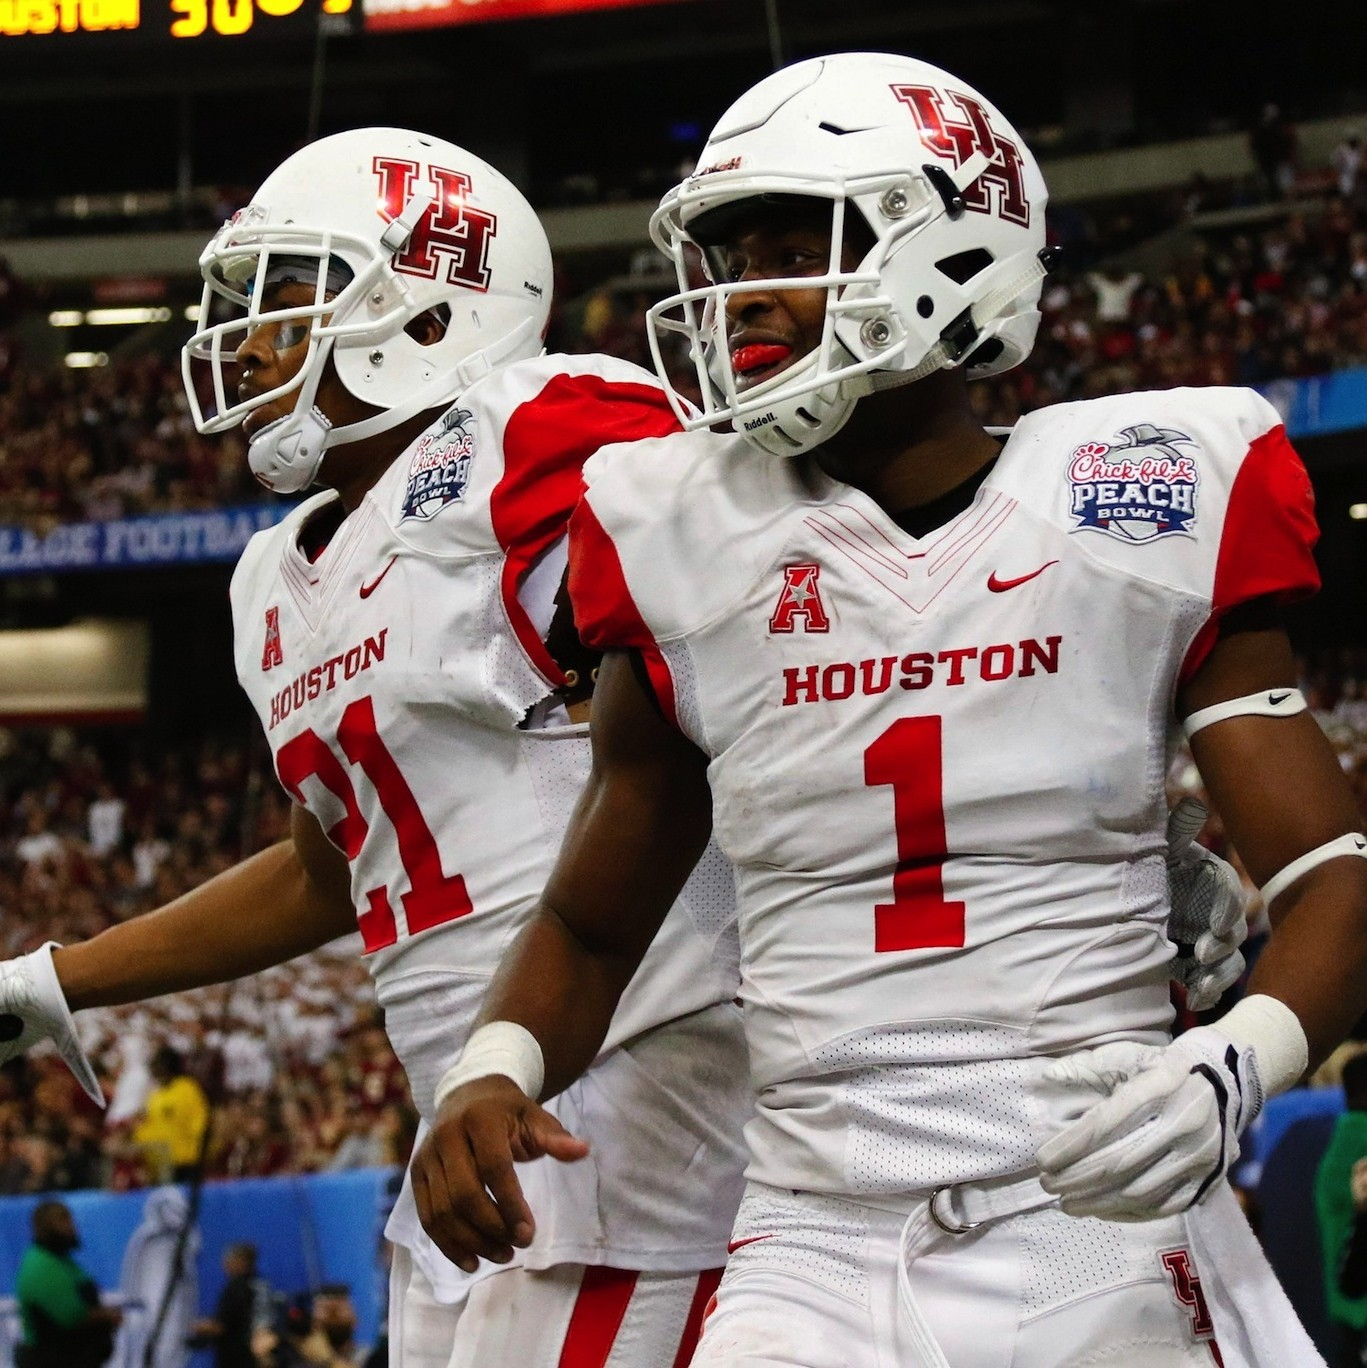 As-big-12-expansion-looms-houston-is-playing-for-more-than-wins-1470772888.jpg?crop=0